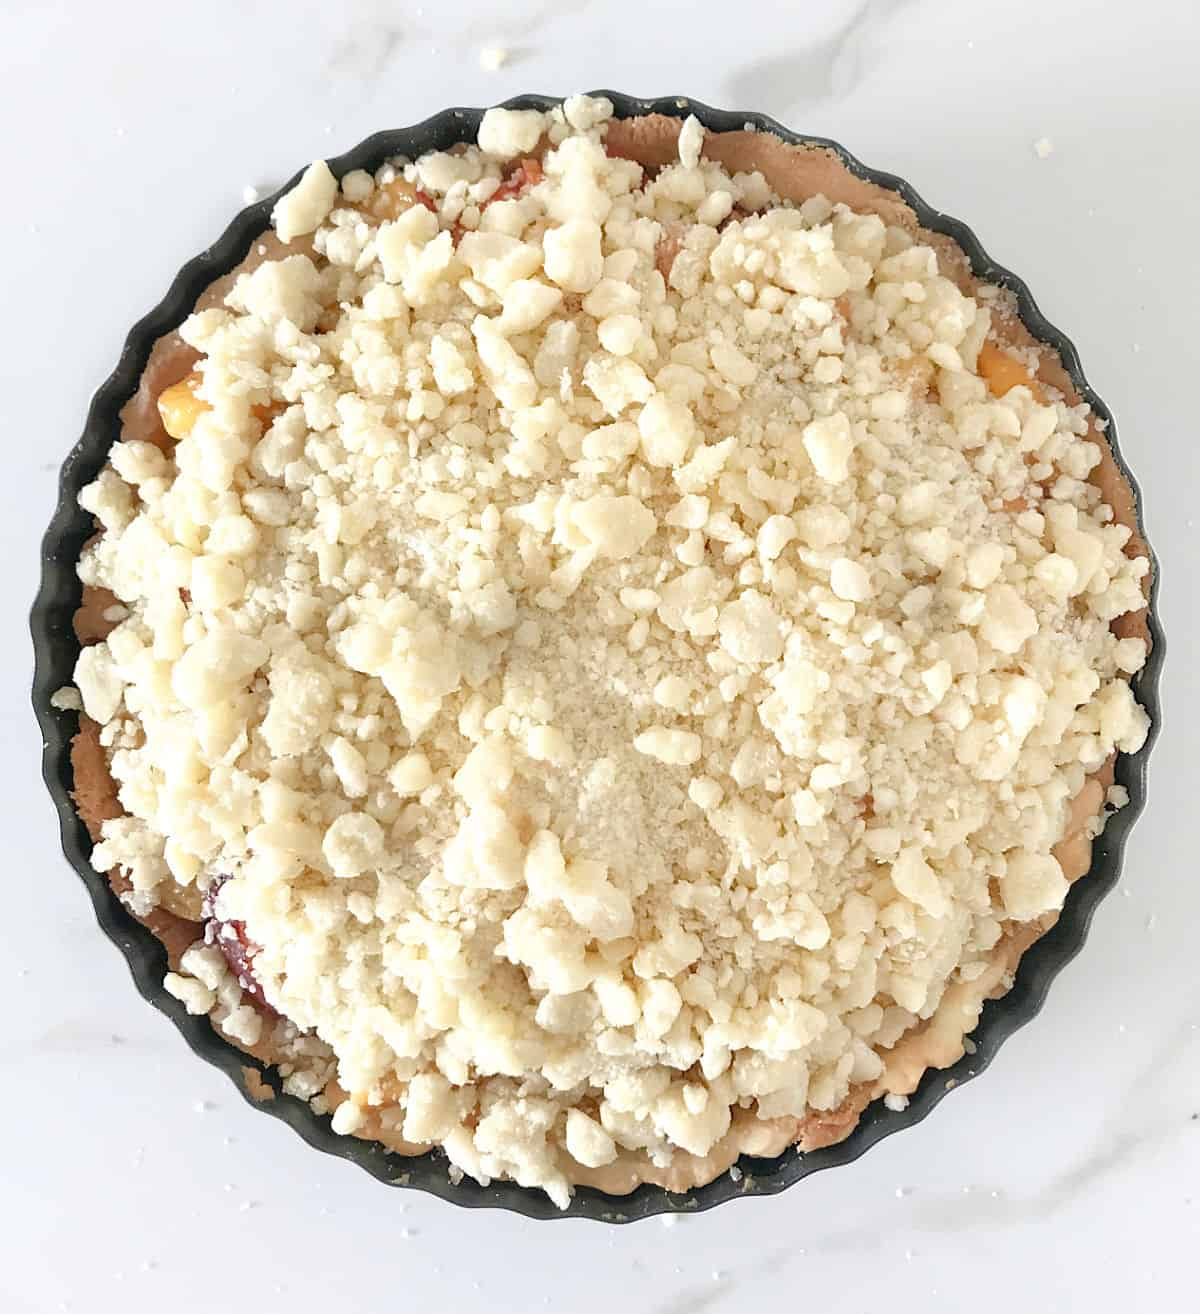 Top view of round pan with unbaked crumb pie on white marble